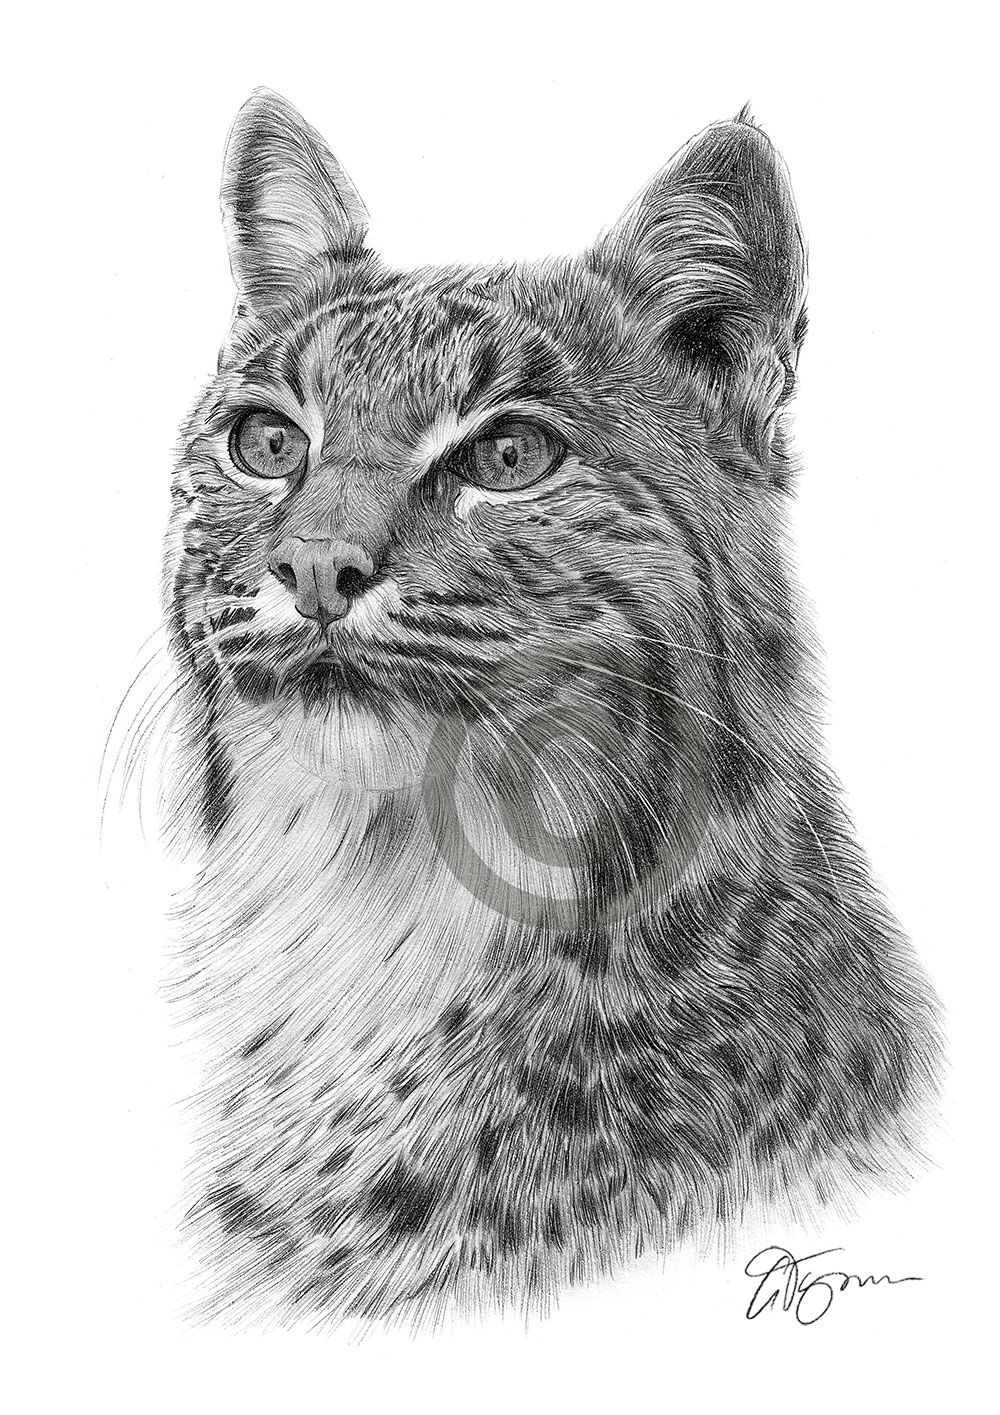 Bobcat Lynx pencil drawing by artist Gary Tymon